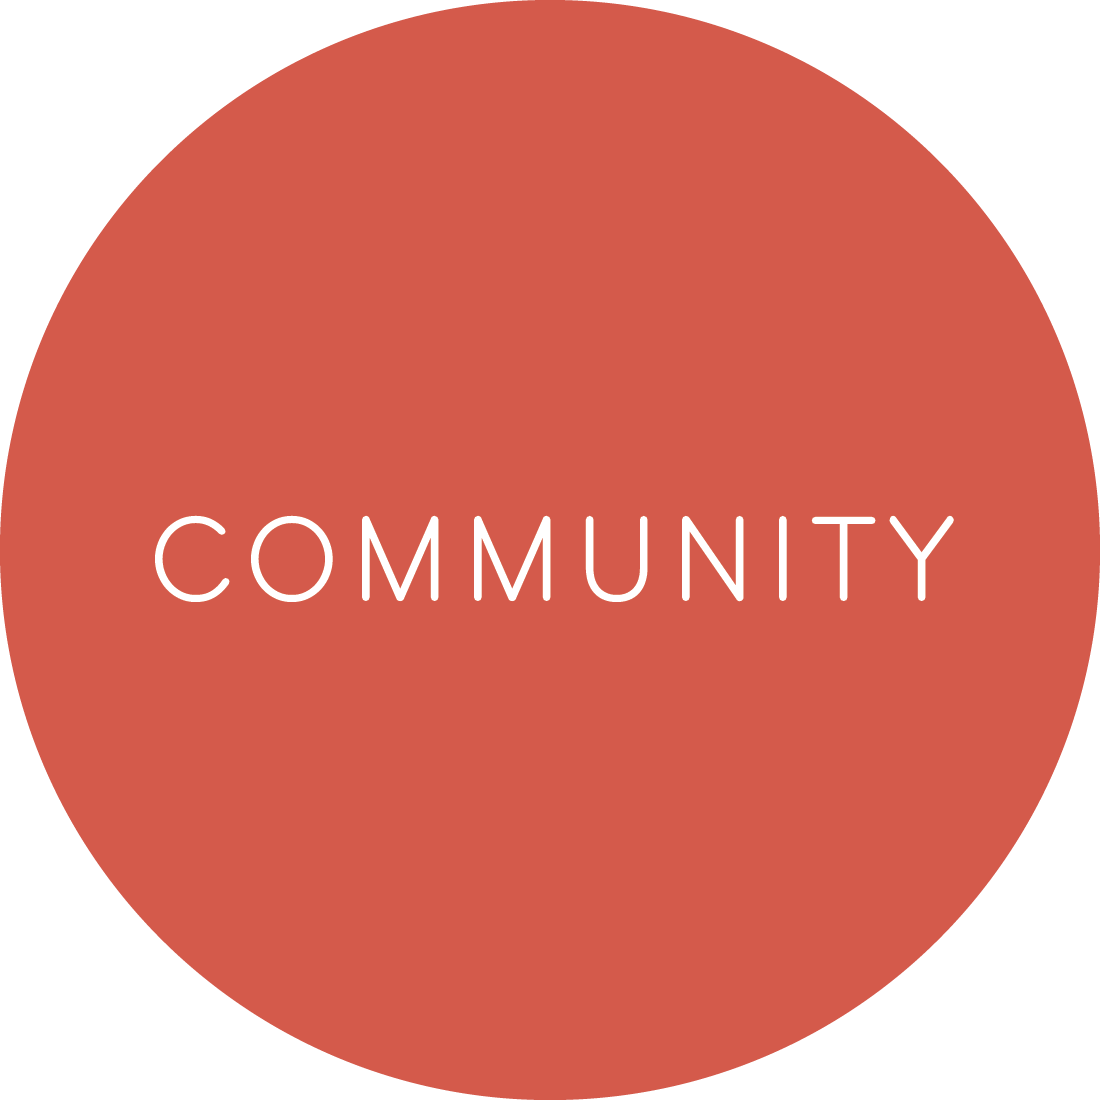 communityred (1).png